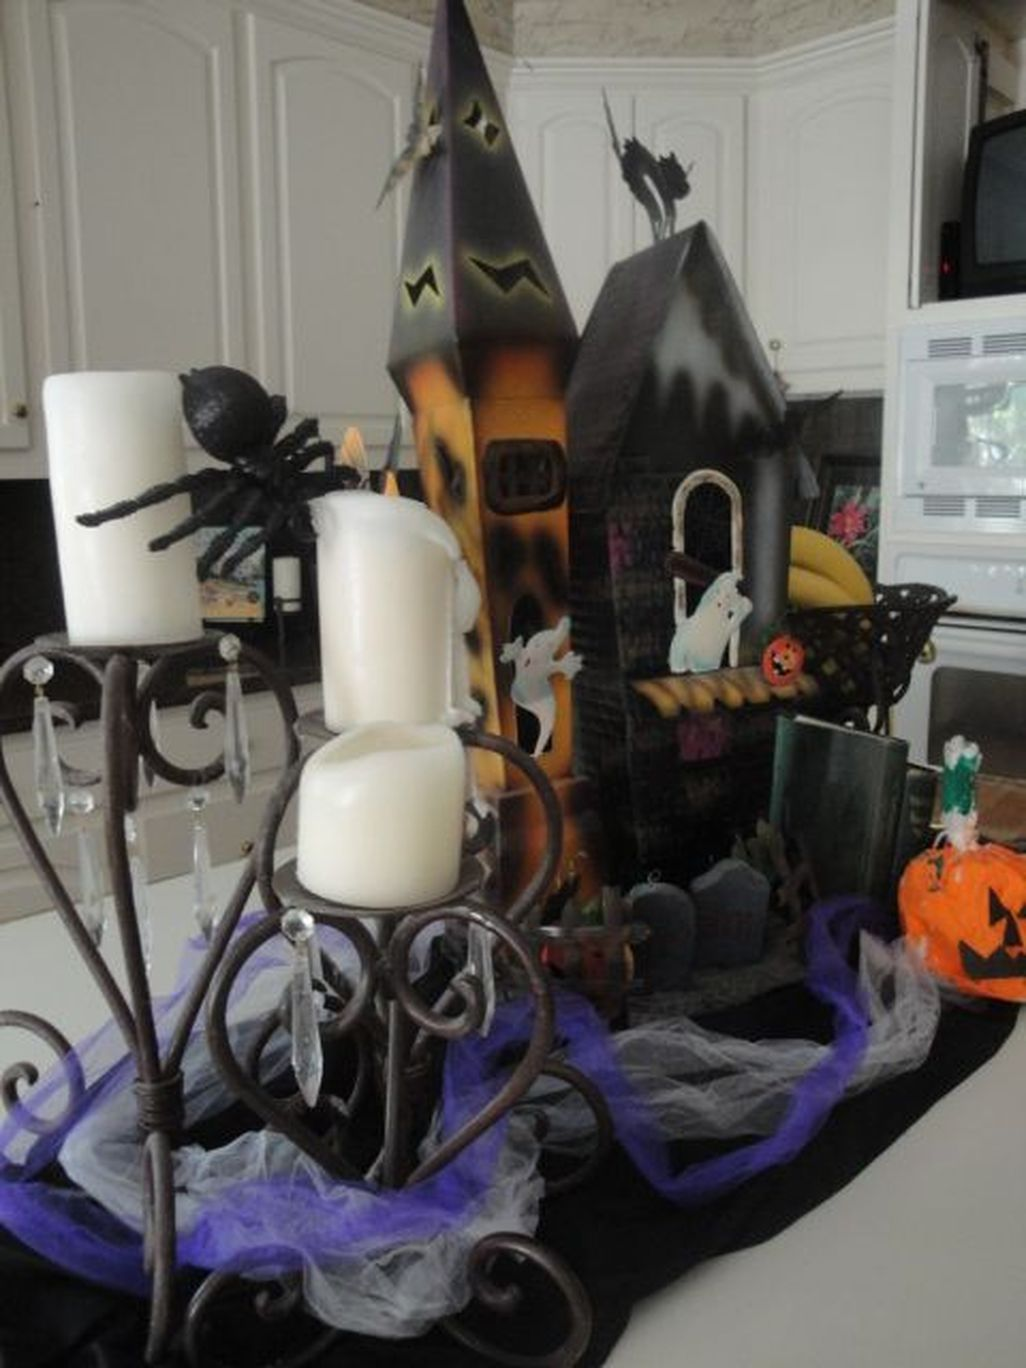 42 Nice Homemade Halloween Decorations Pinterest Homemade - Homemade Halloween Decorations Pinterest